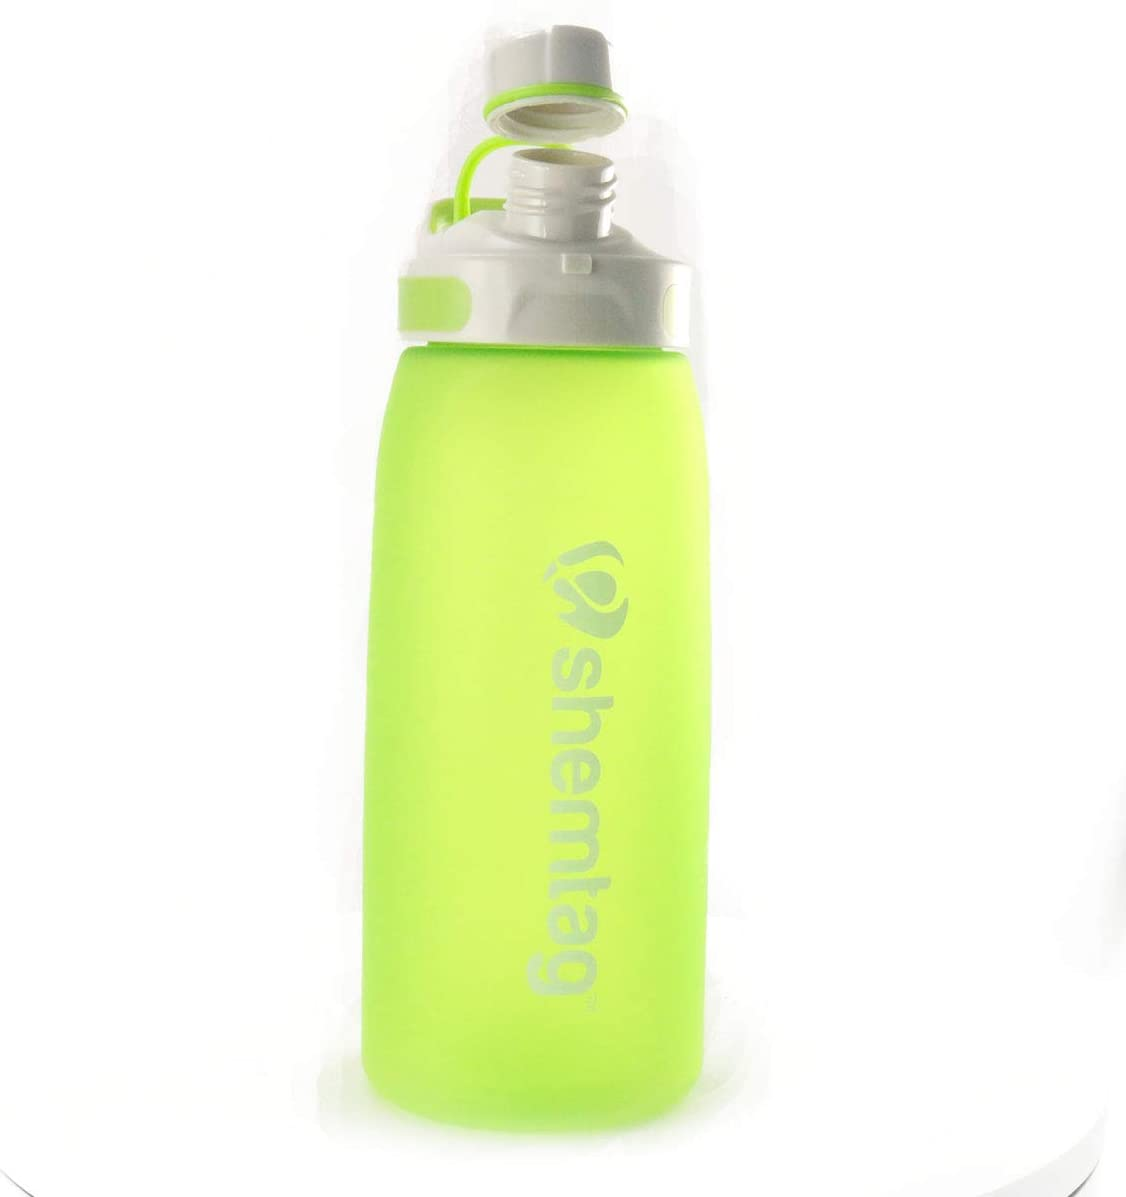 Shemtag Tritan Water Bottle 30oz - 900ml, with Screw Cap BPA-Free for Sports & Camping, Your Lifestyle Tritan Drinking Bottle